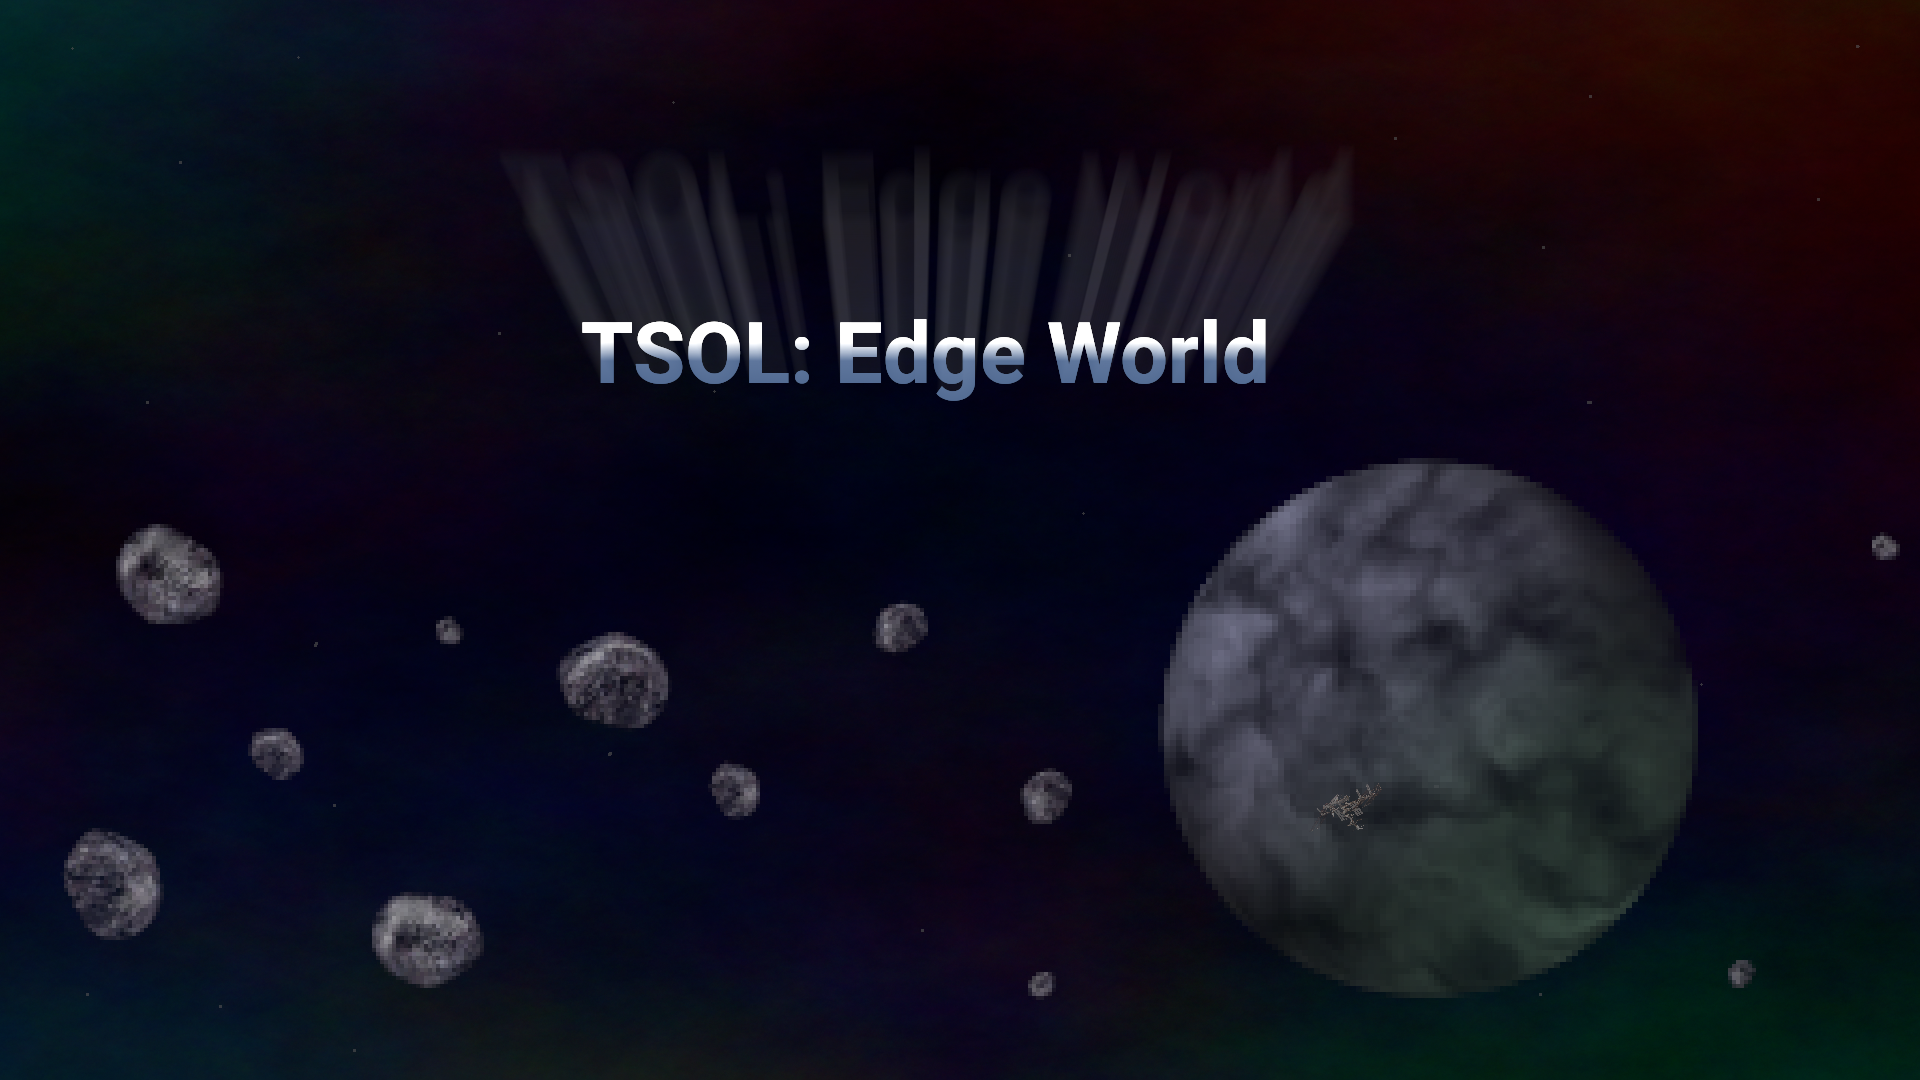 TSOL: Edge World